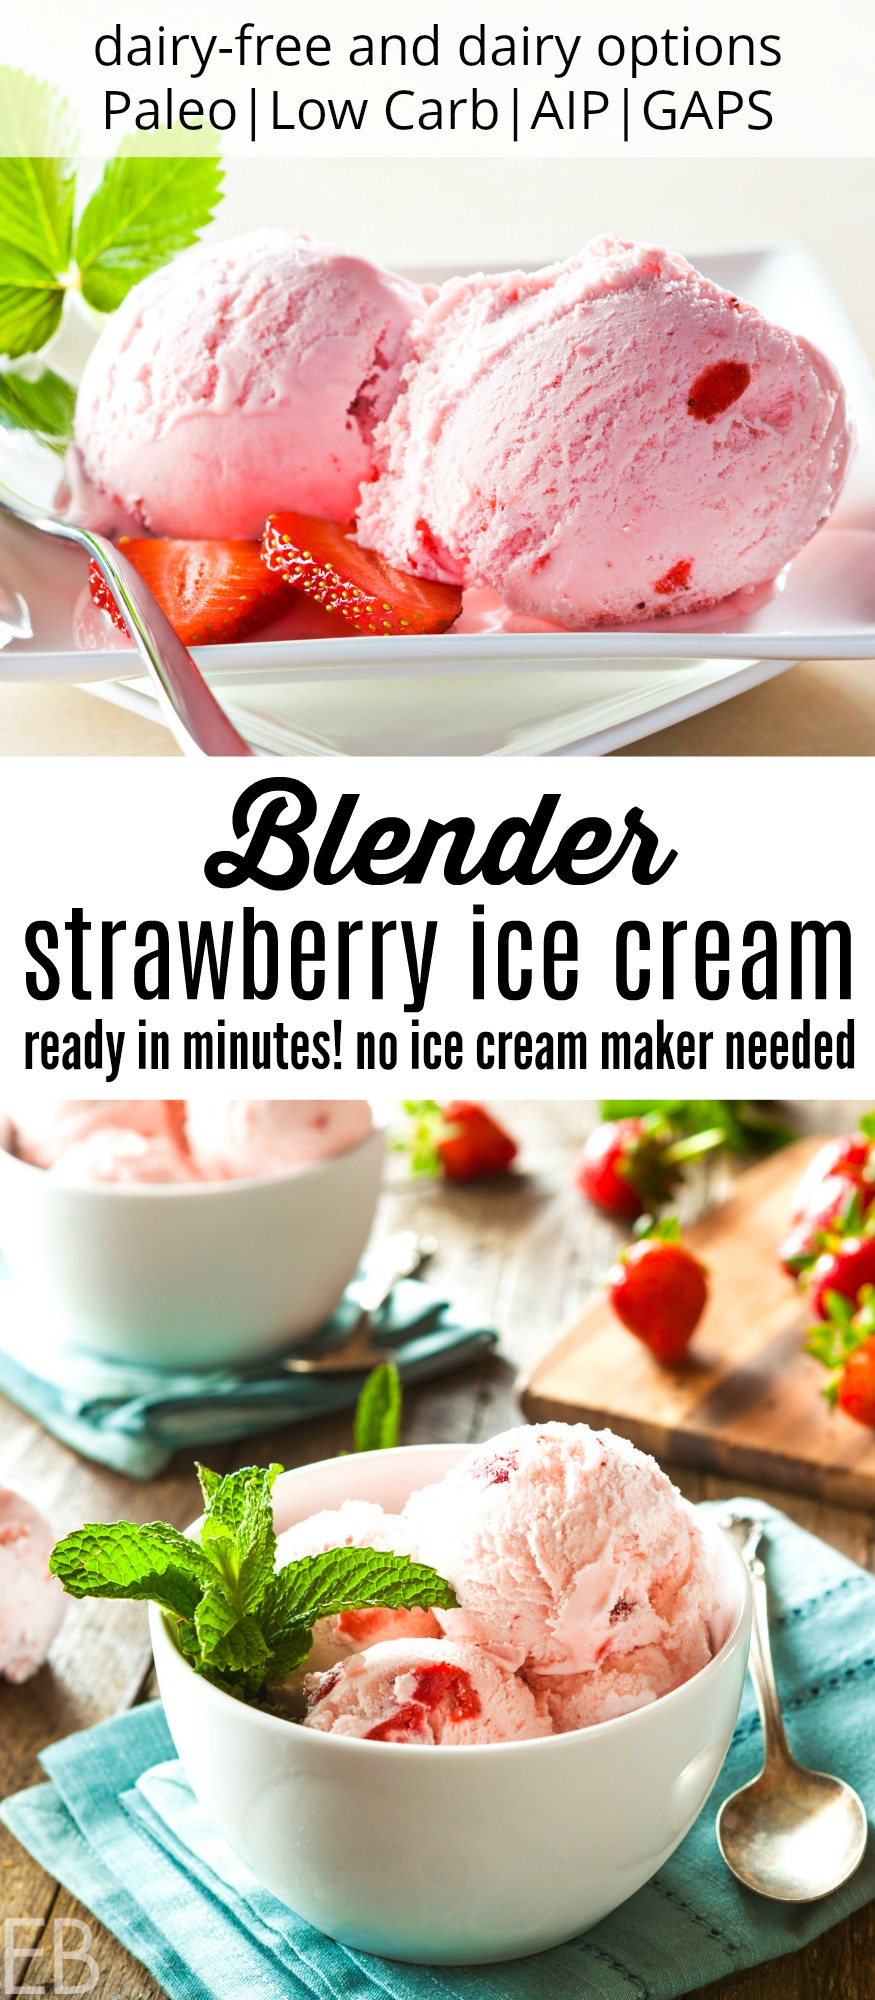 Blender Strawberry Ice Cream #ketoicecream